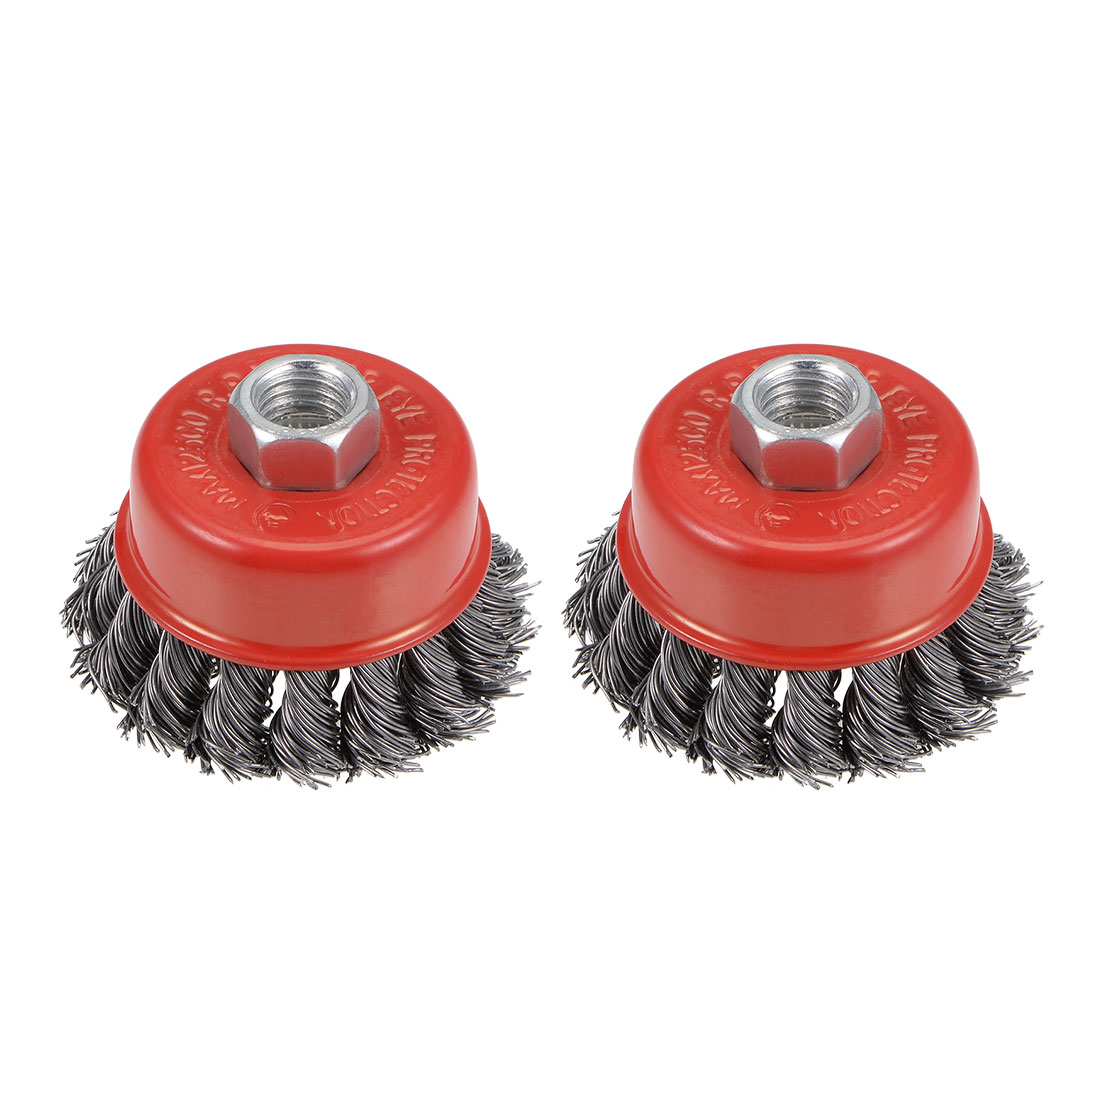 2-1/2-Inch Wire Cup Brush Twist Knotted Crimped Steel w M14 Threaded Hole 2 Pcs